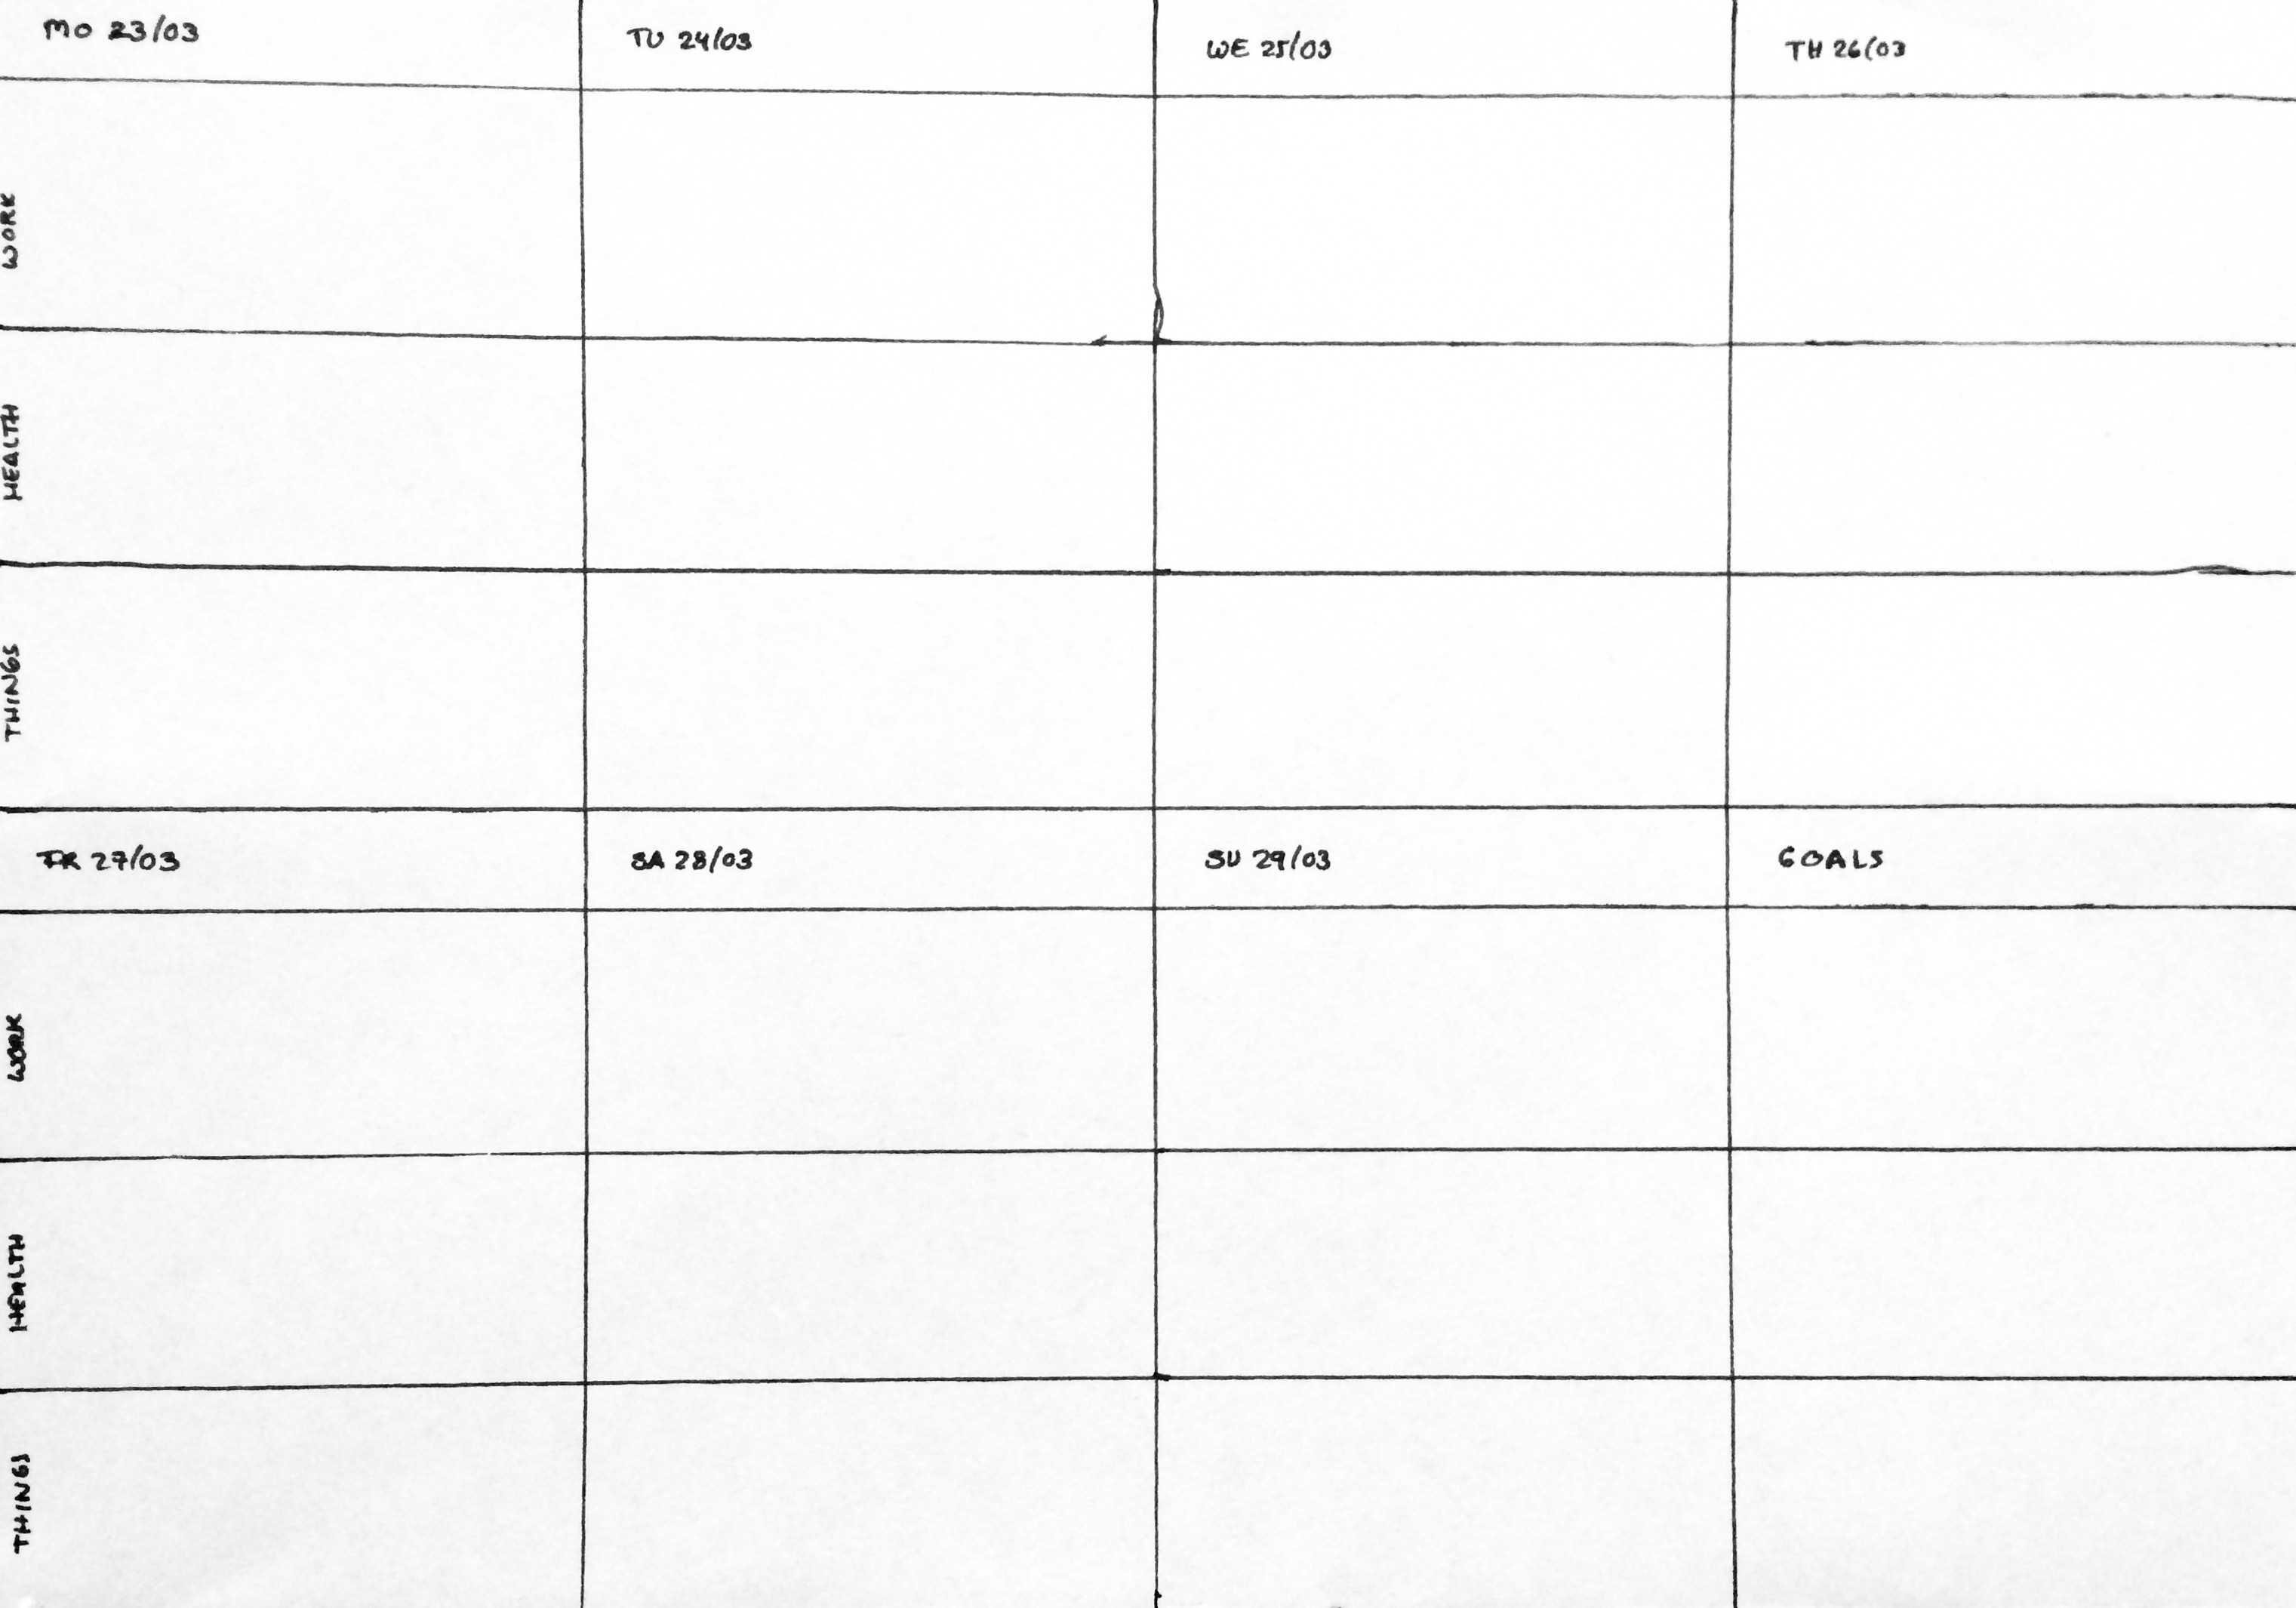 Weekly plan; each day has categories work, health, and things